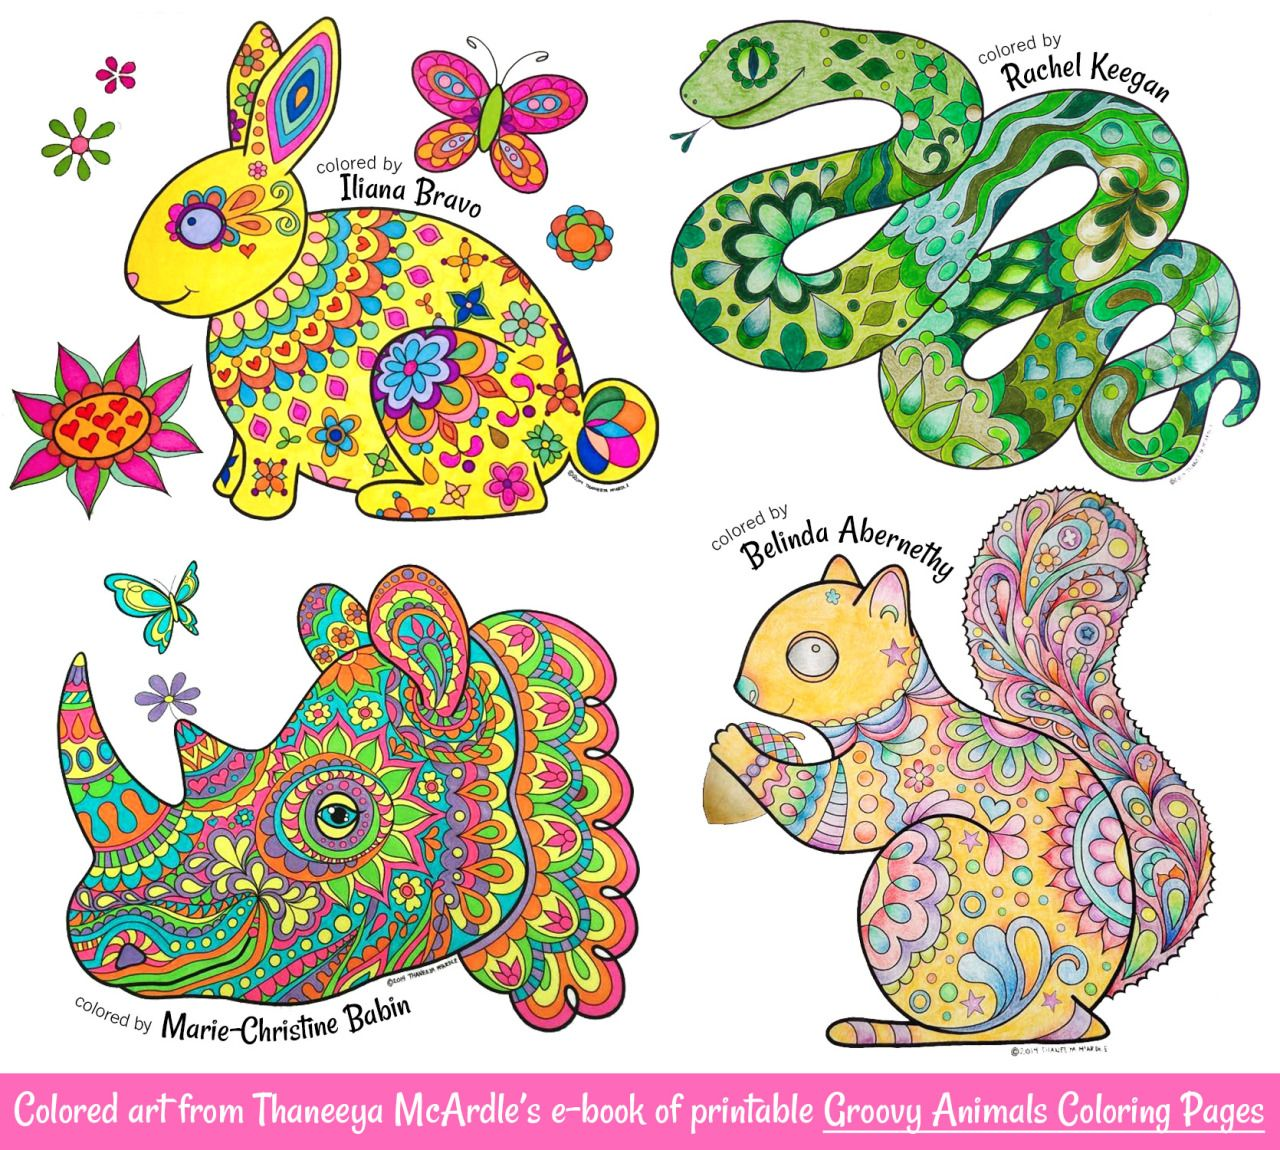 Examples Of A Colored Art From Thaneeya McArdles E Book Printable Groovy Animals Coloring Pages